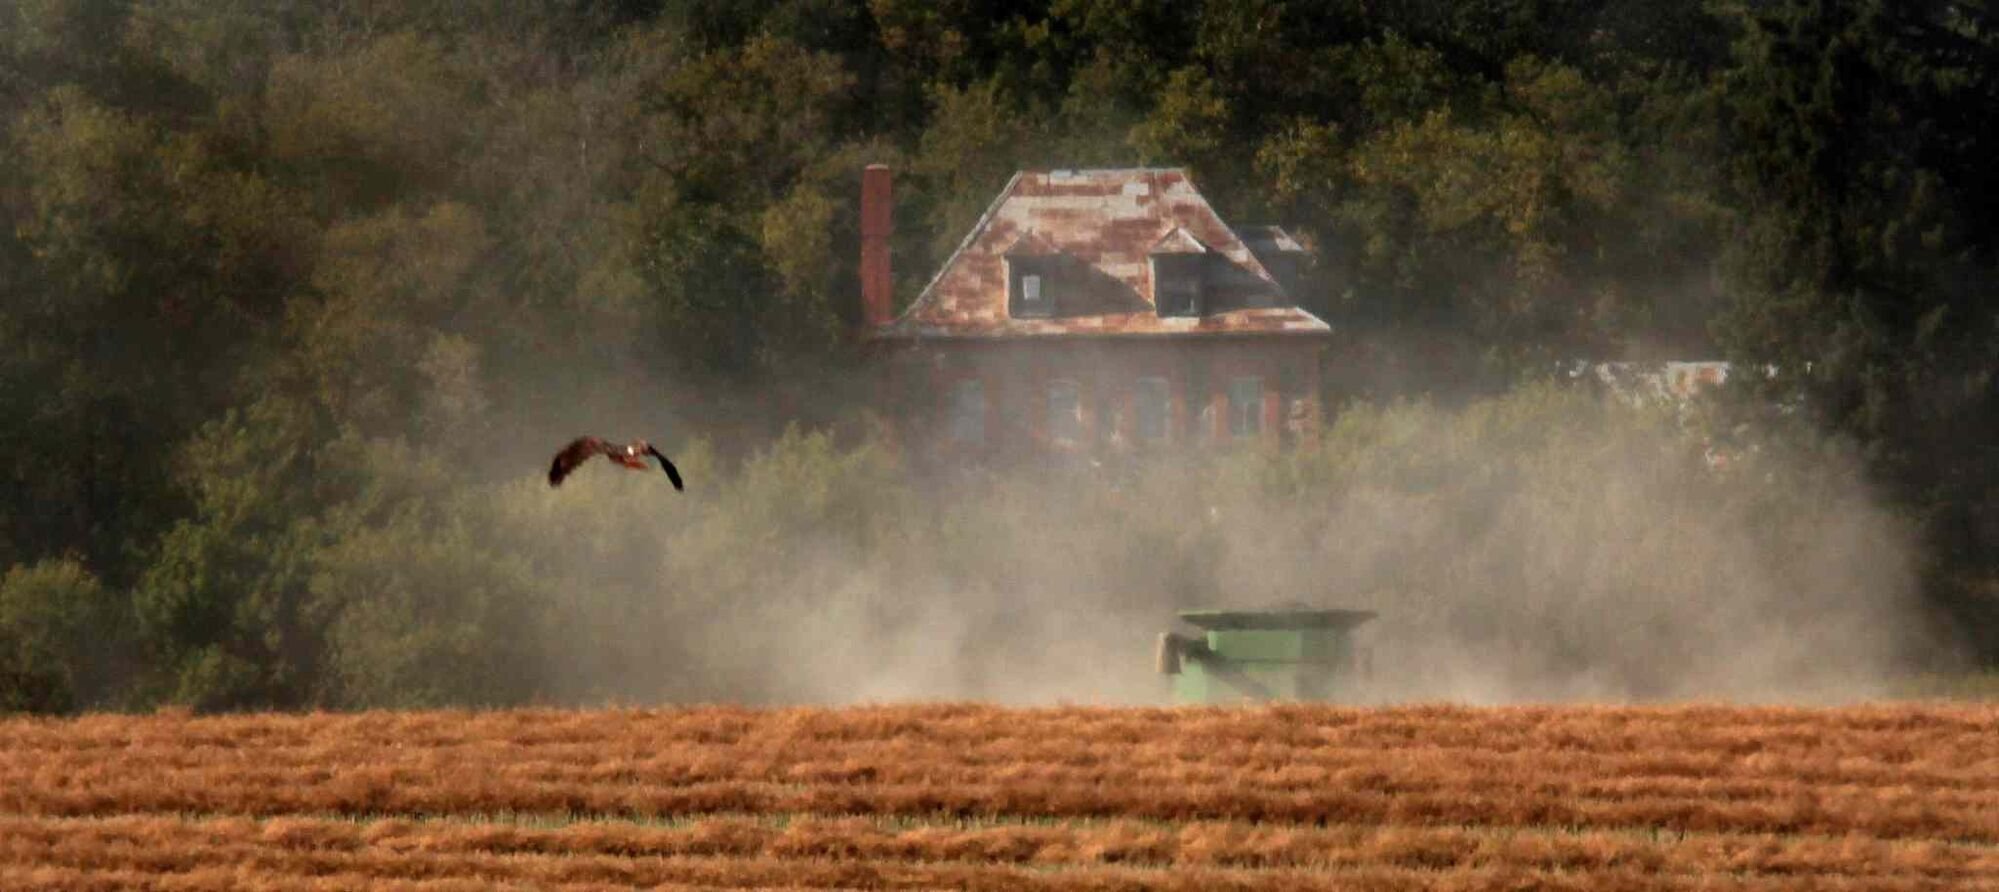 A red-tailed hawk soars, scanning a canola field being harvested near Notre Dame de Lourdes. (Phil Hossack / Winnipeg Free Press)